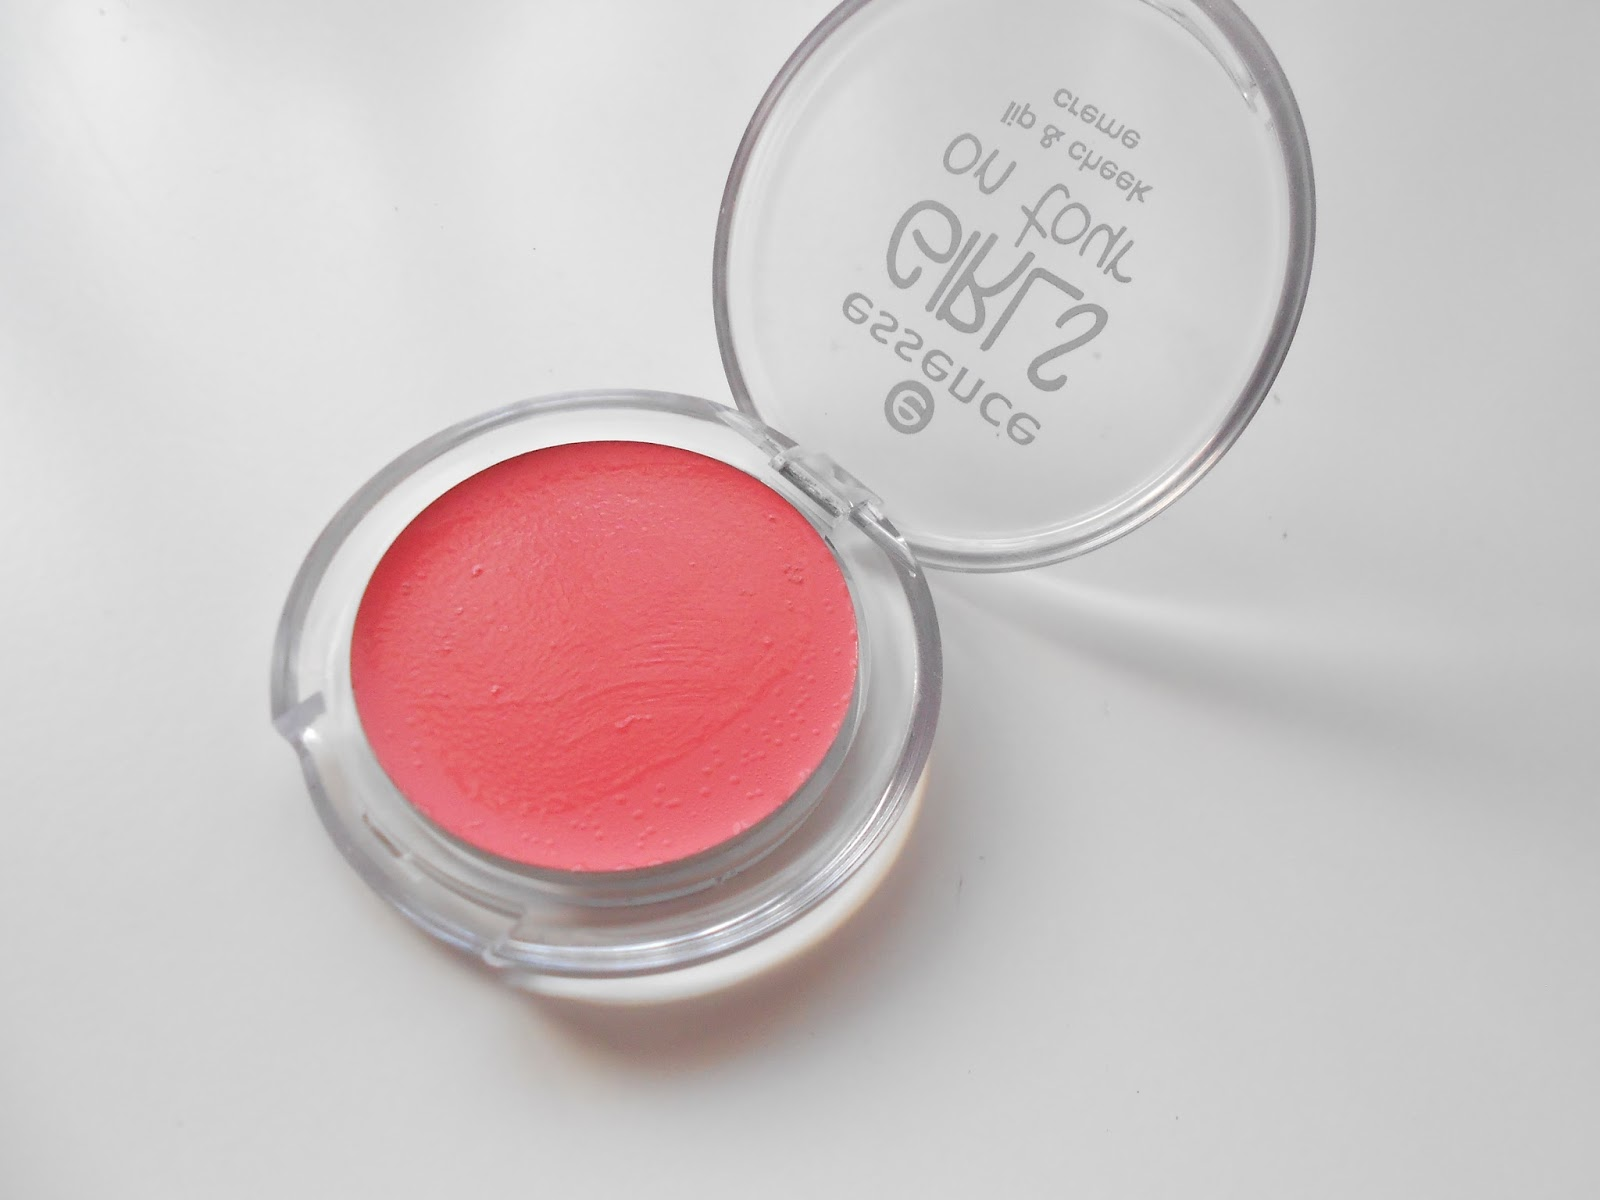 Girls on Tour Lip and Cheek Creme from Essence Cosmetics in the shade 'Big Apple'.